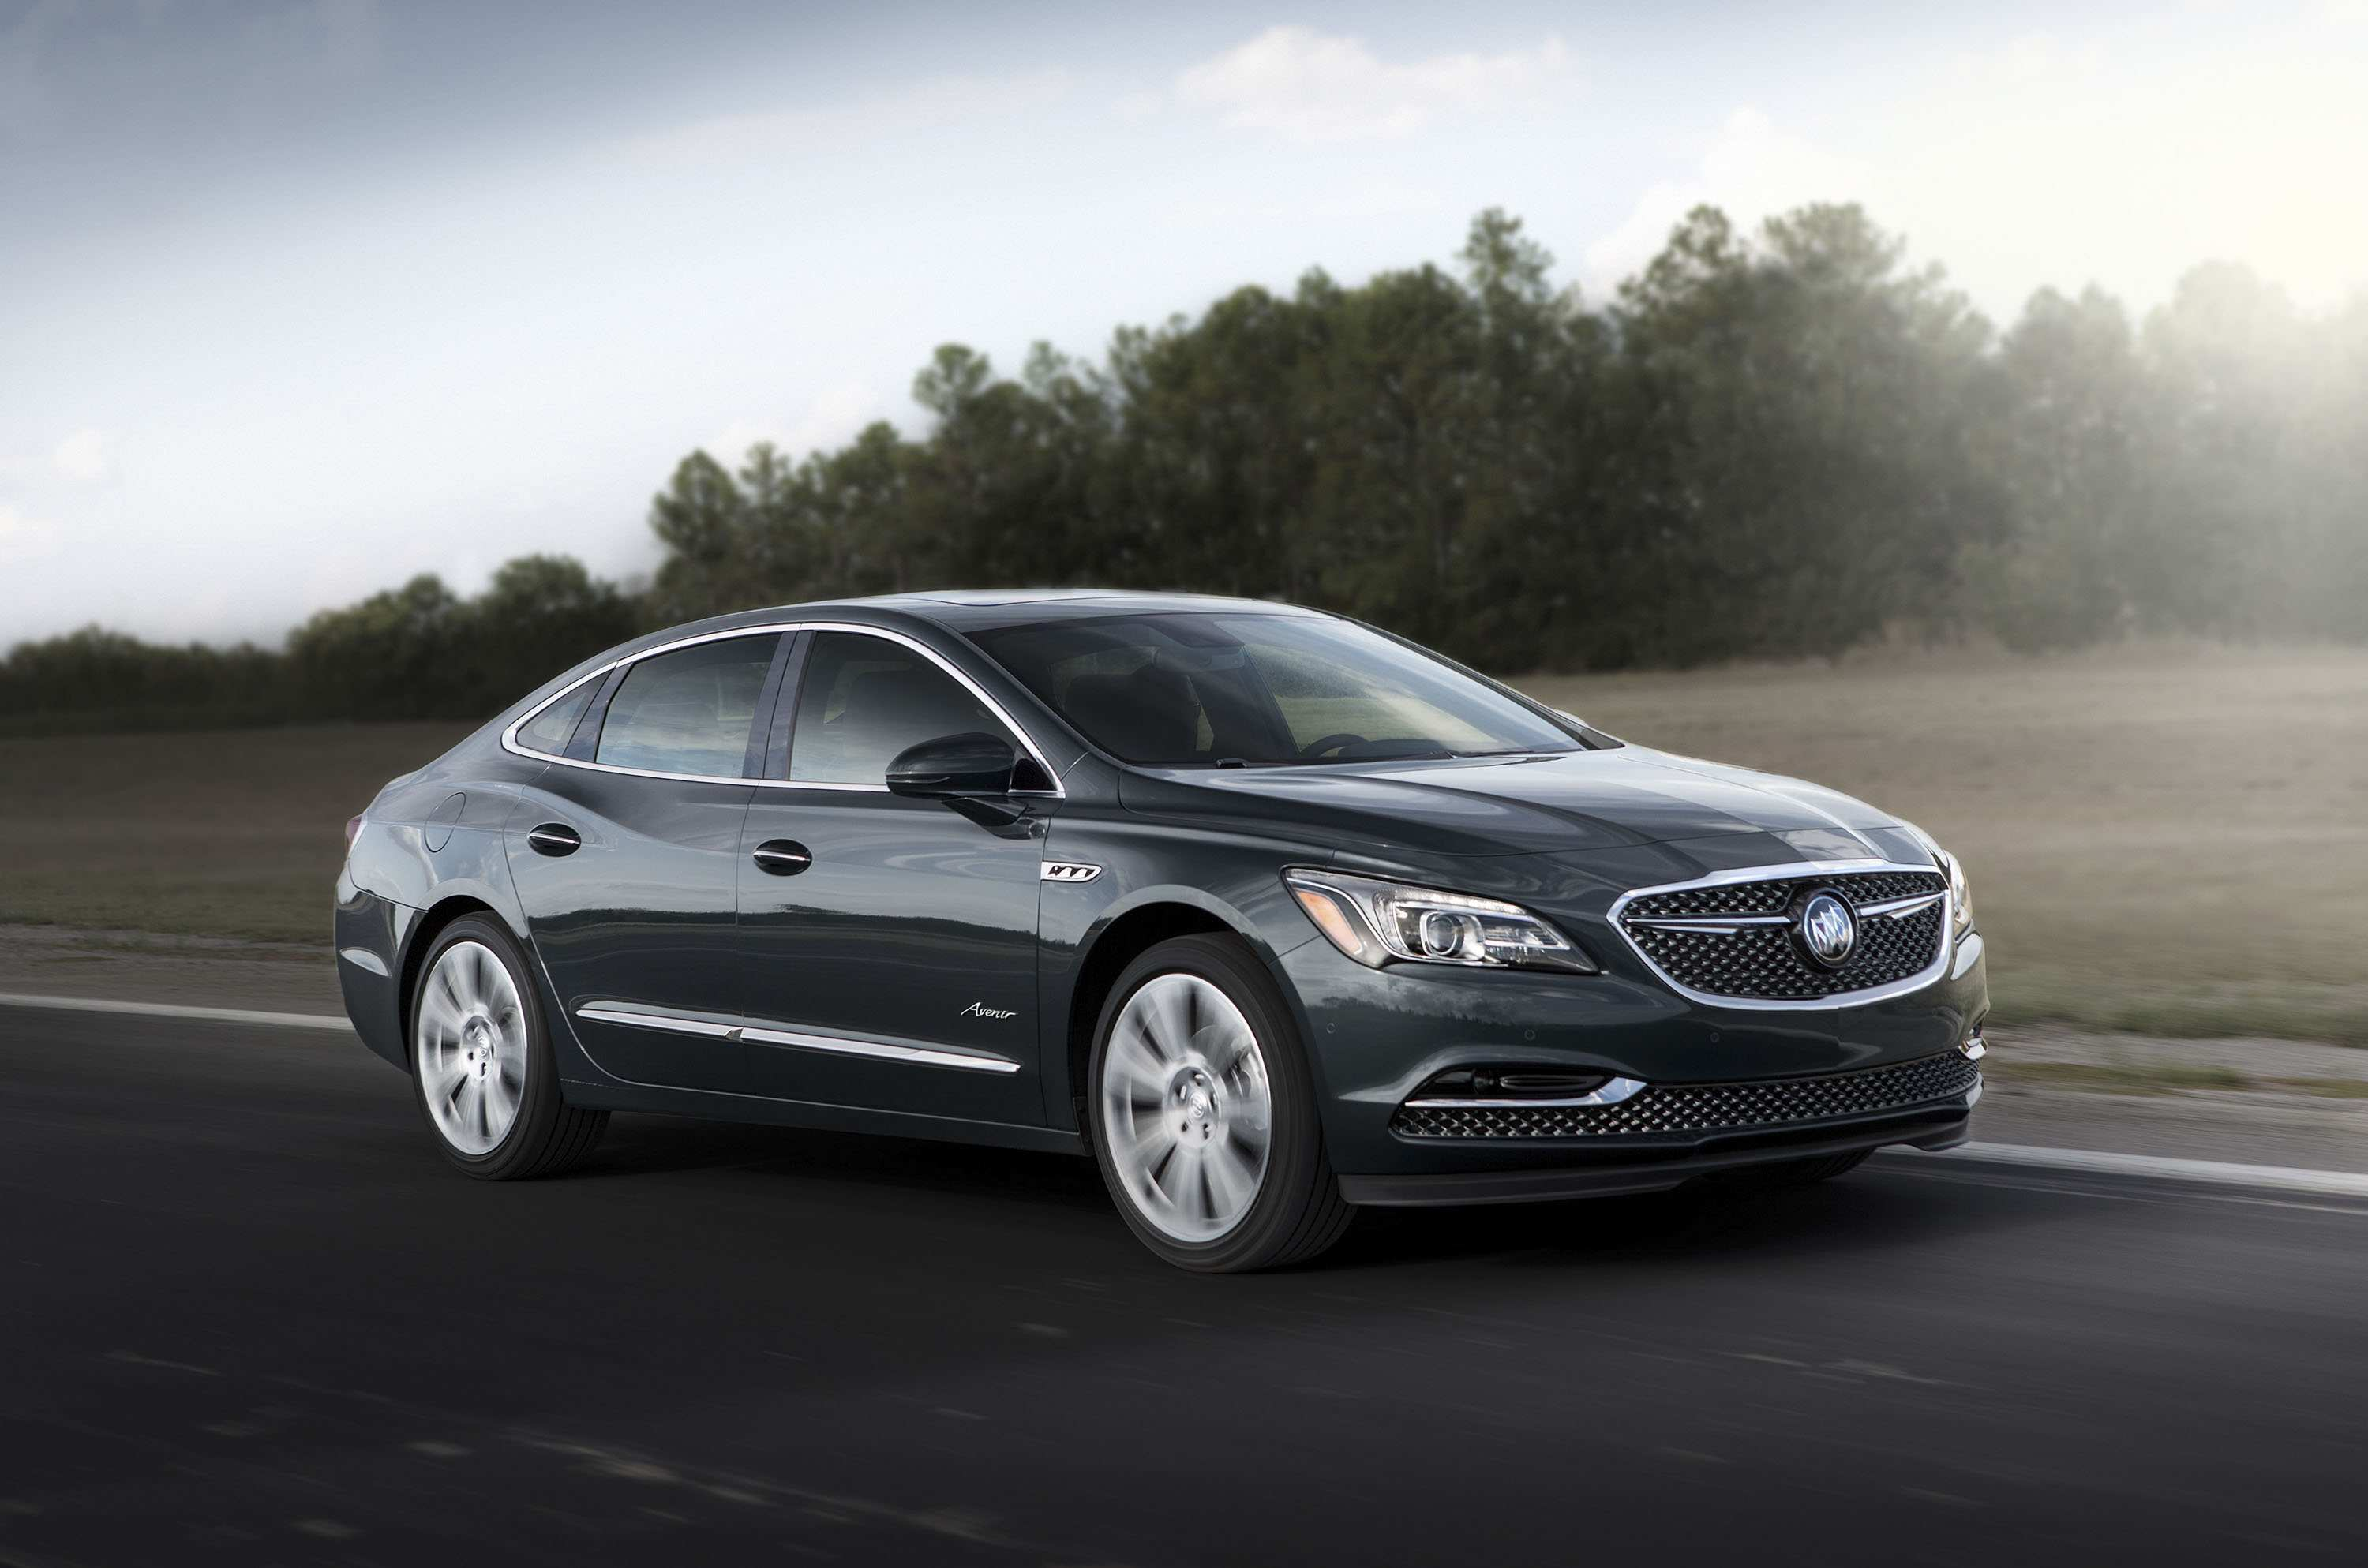 92 Gallery of New Buick Lacrosse 2019 Reviews Concept Redesign And Review New Review with New Buick Lacrosse 2019 Reviews Concept Redesign And Review